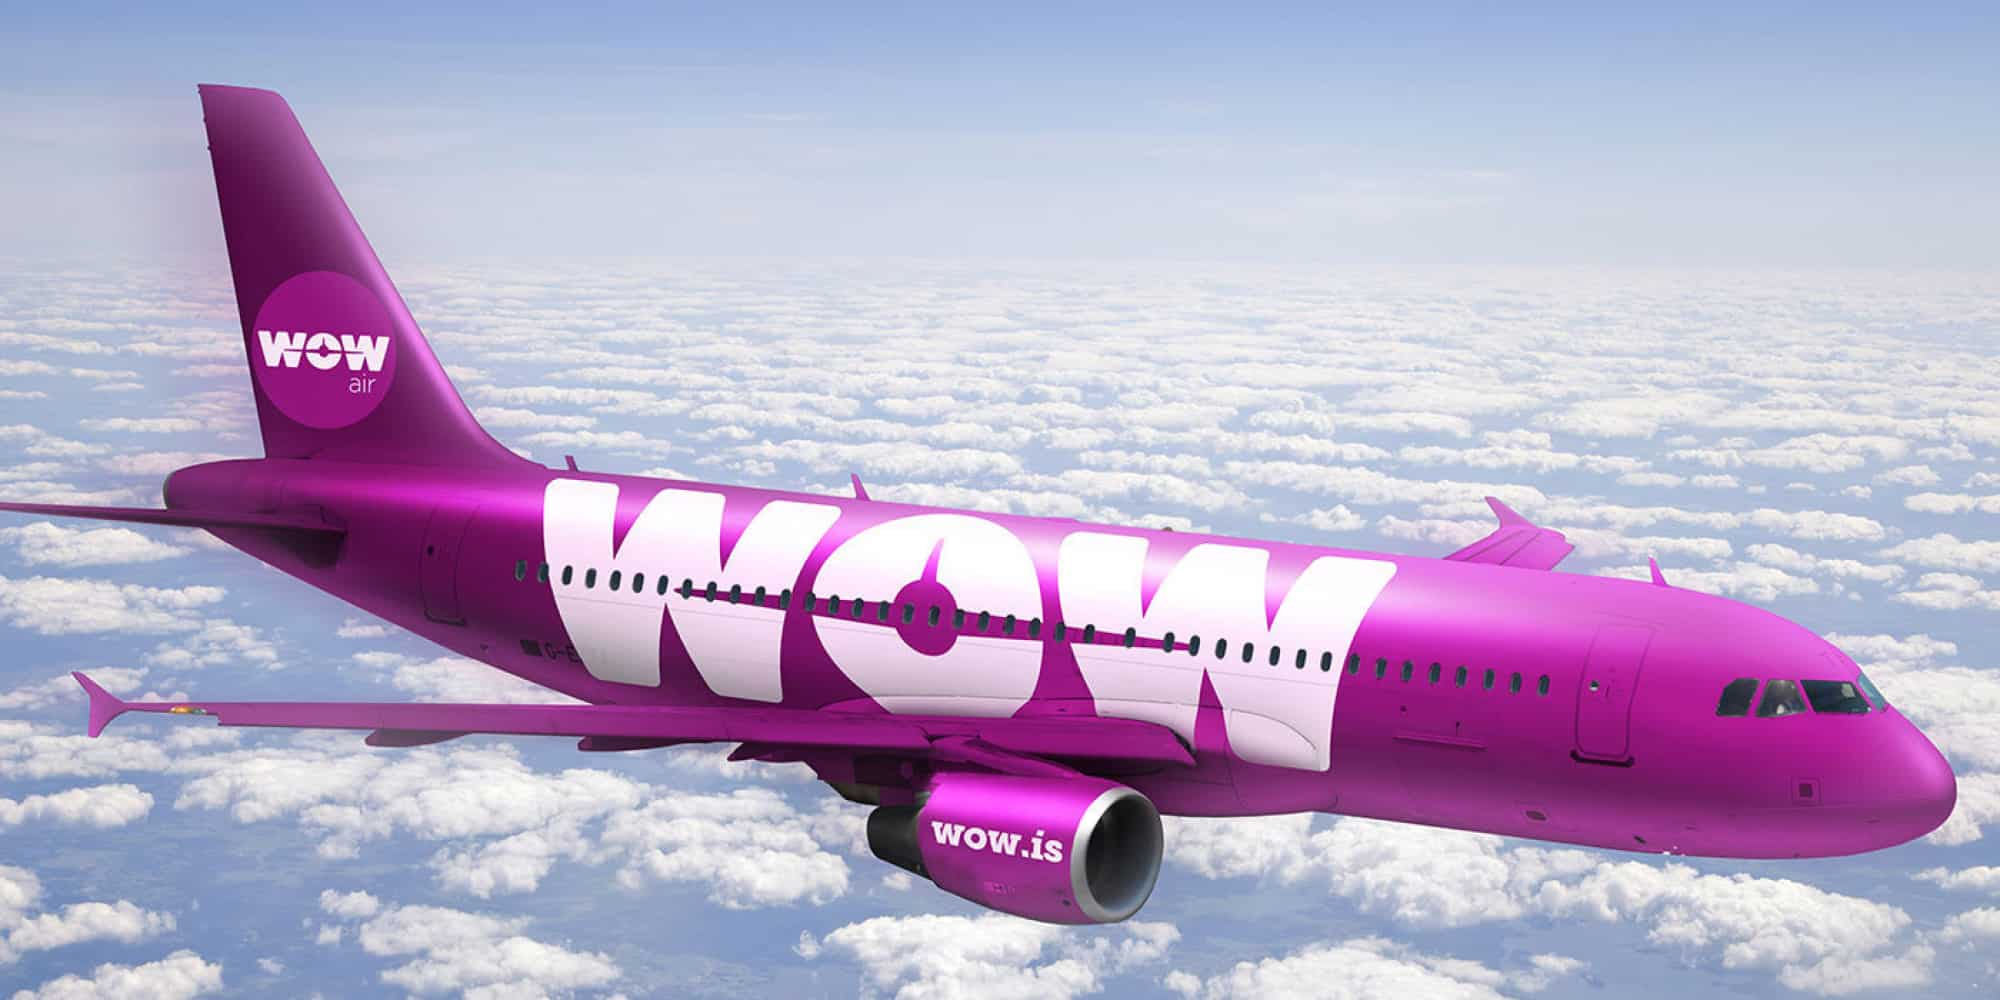 wow airlines big purple air plane